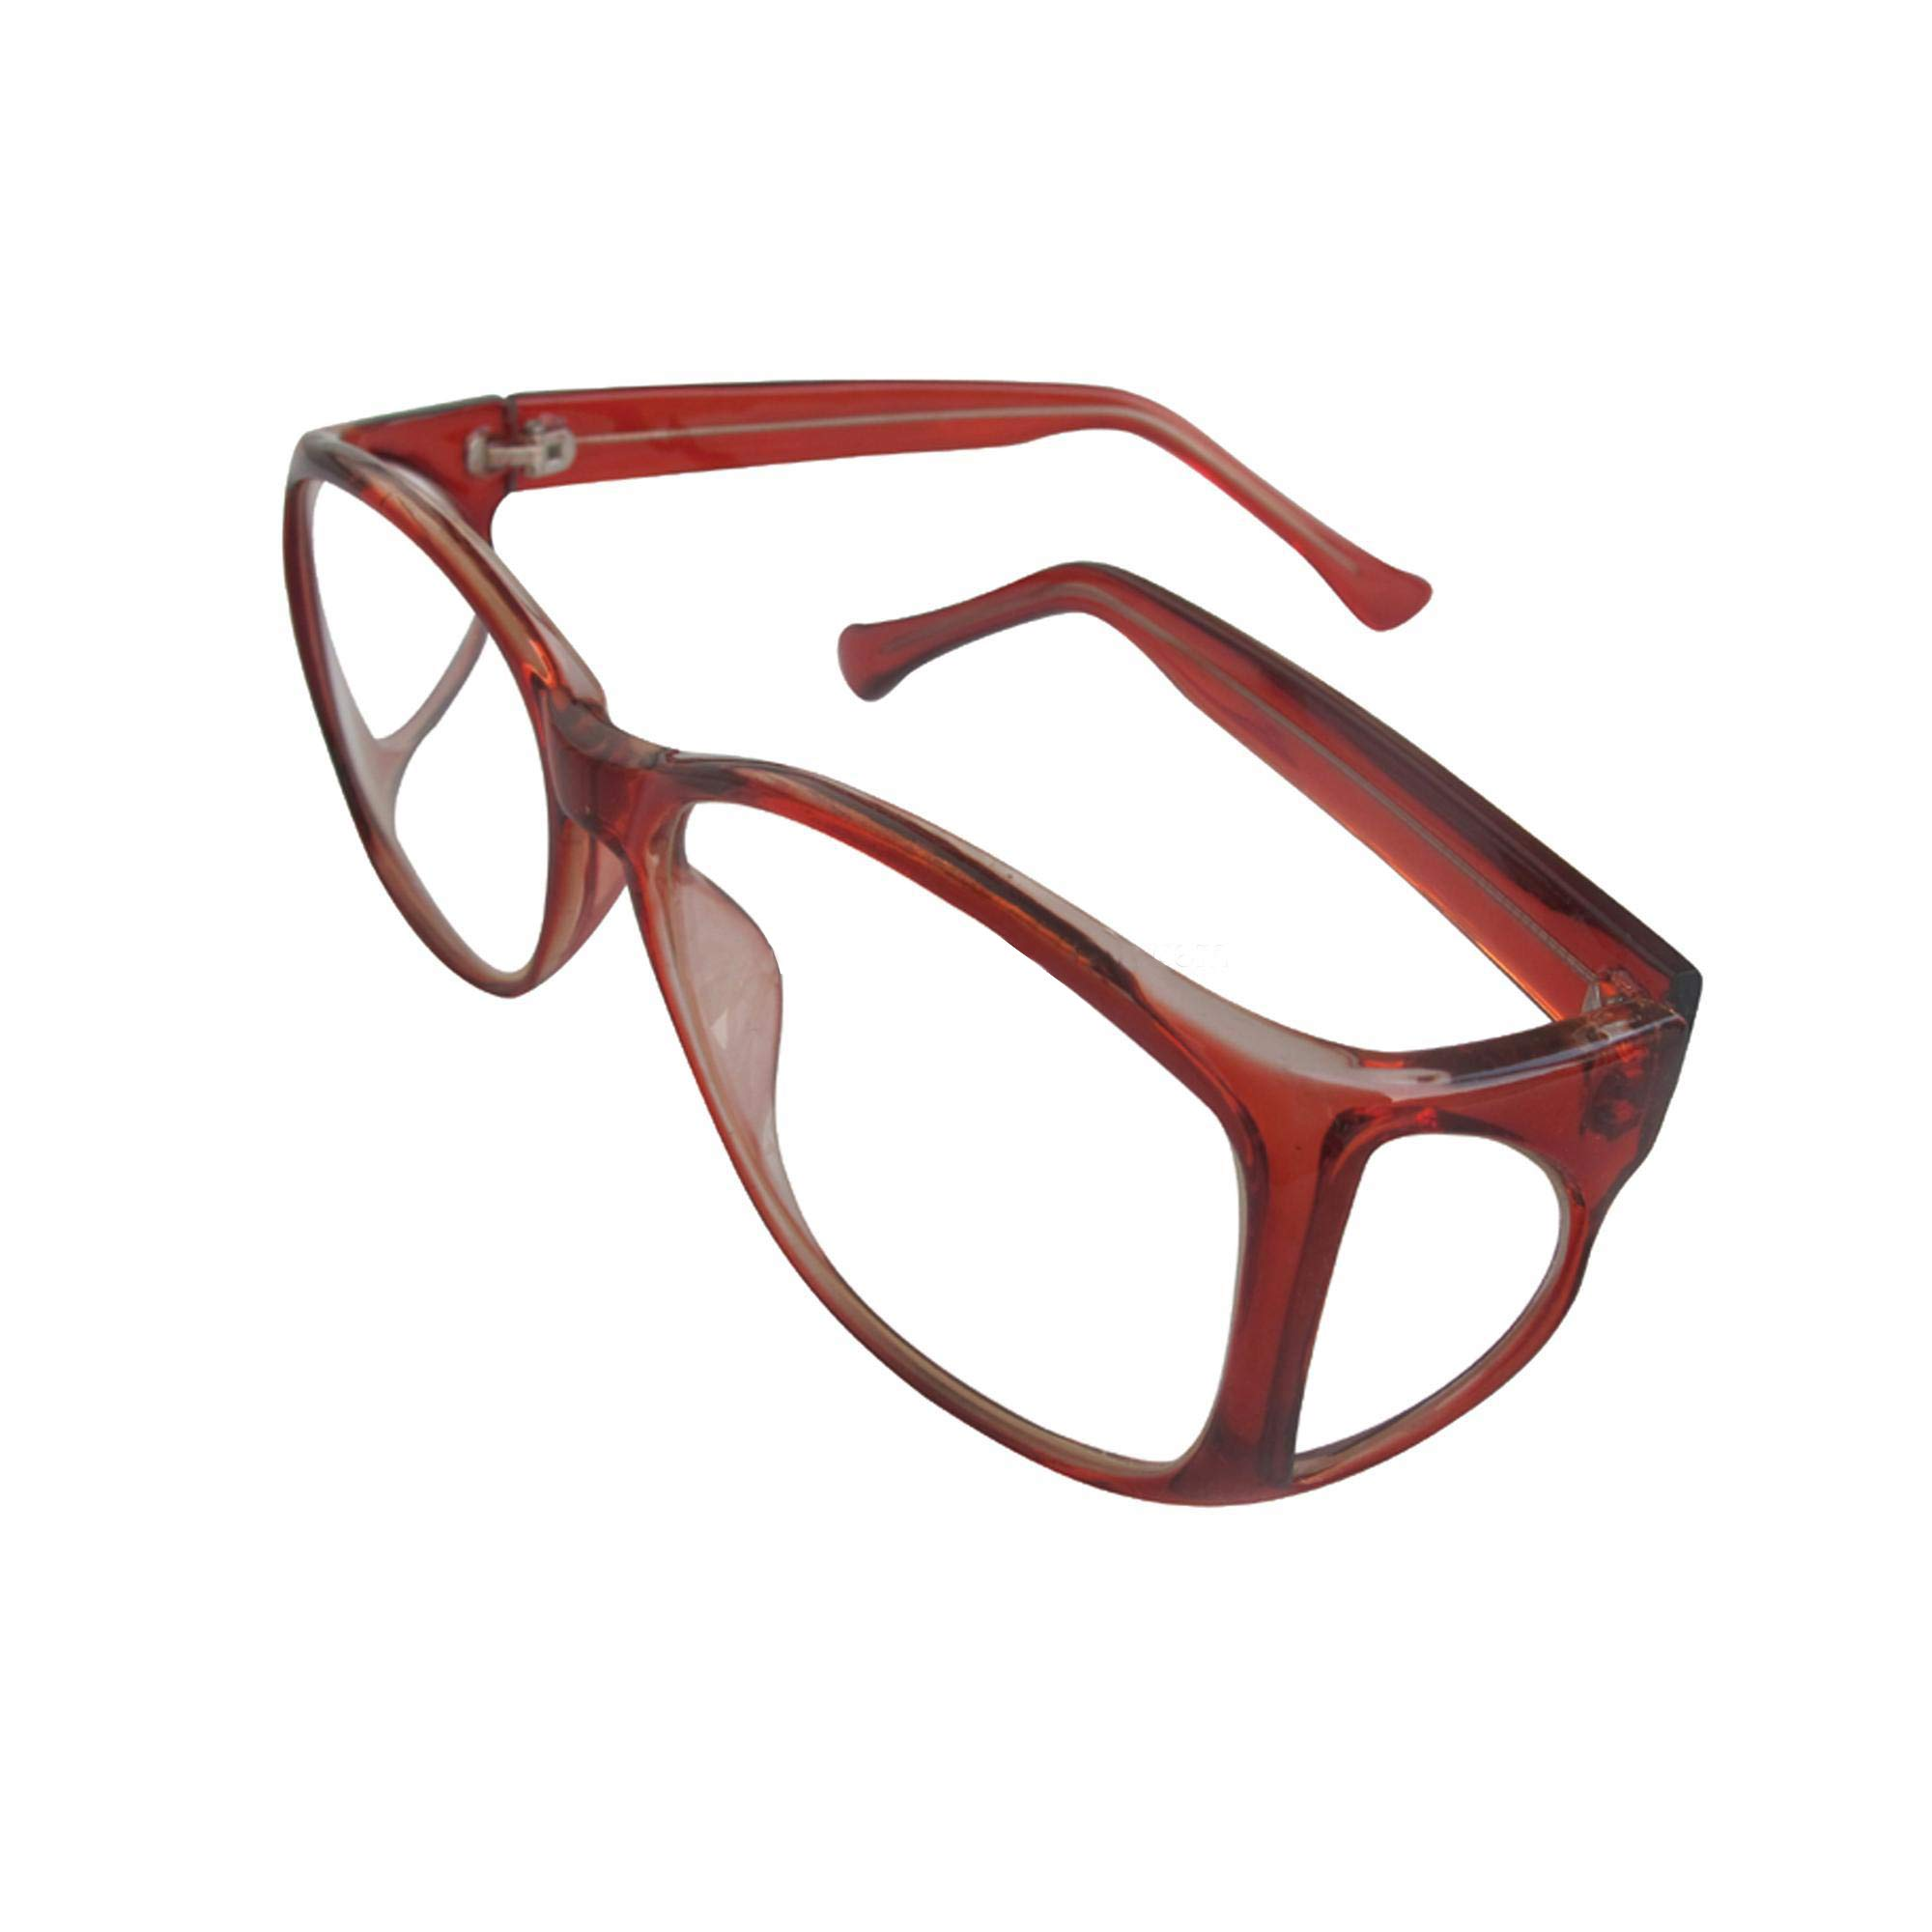 0.75mmPb X-ray Radiation Protection Lead Glasses Medical X Ray Protective Eyewear,Side Protective